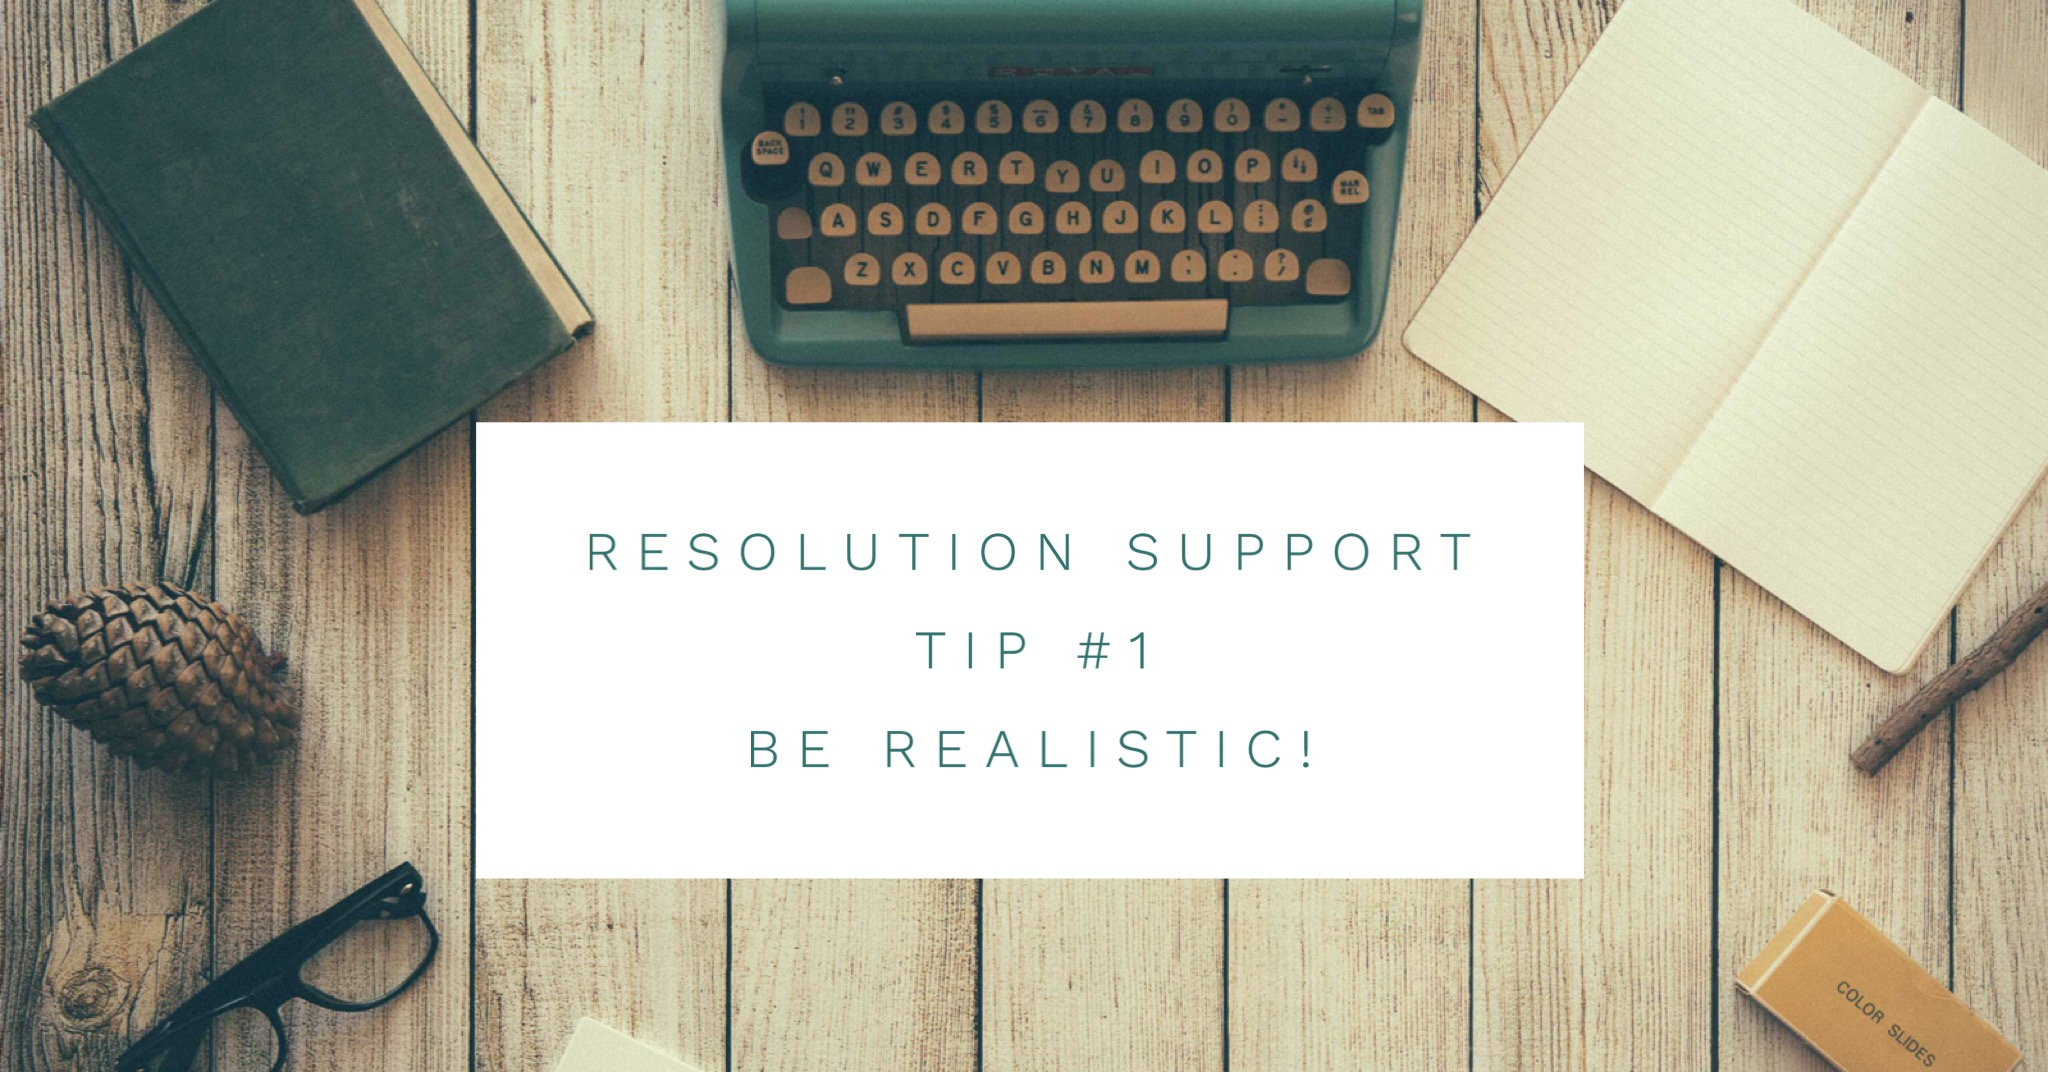 Resolution Support Tip #1: Be realistic!